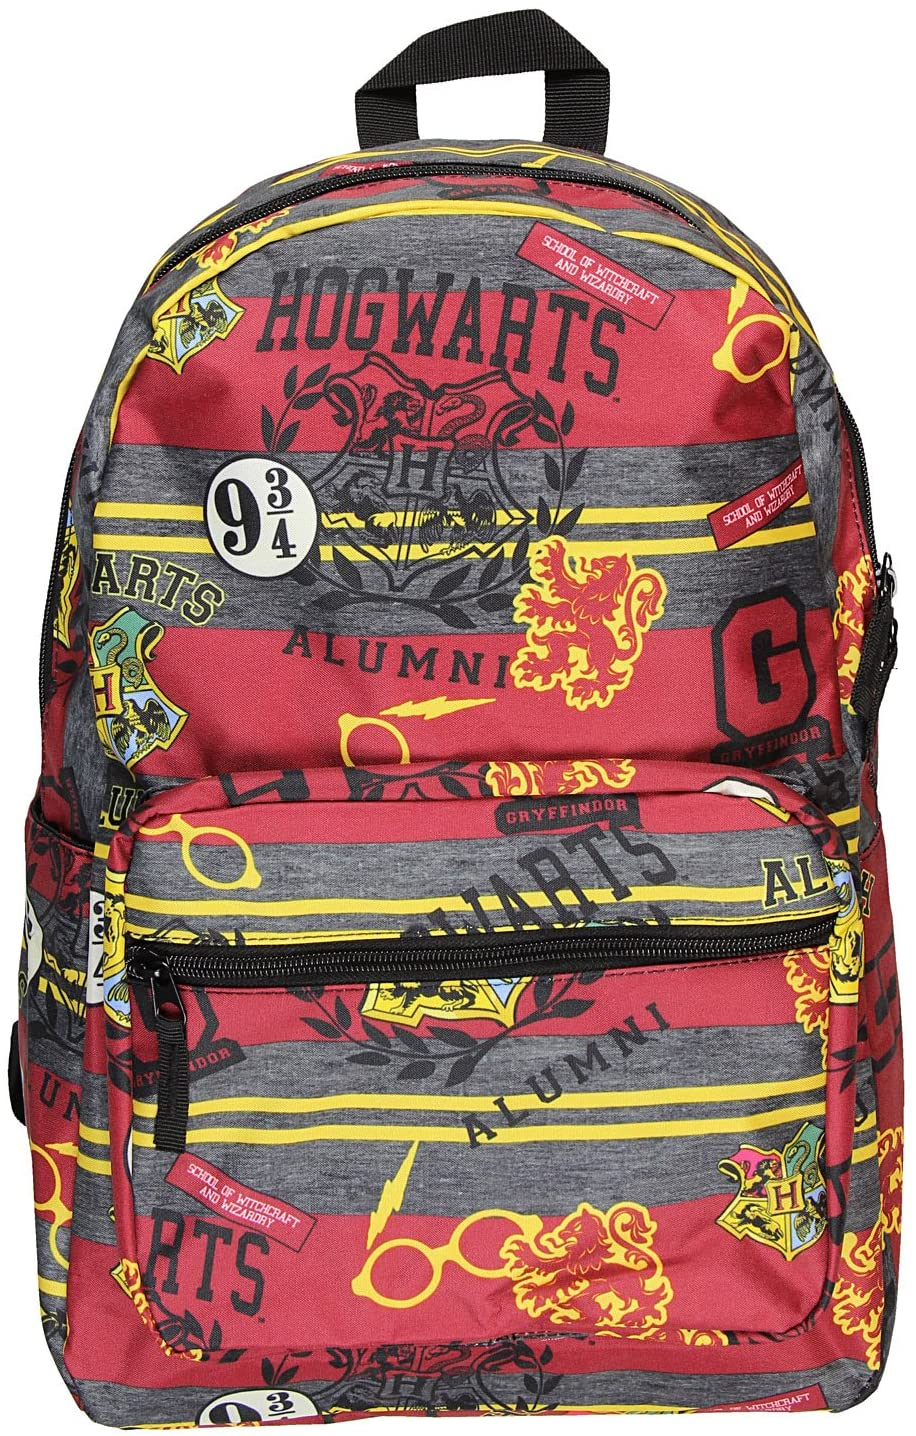 red, grey, and yellow backpack with Hogwarts alumni print, Hogwarts crest